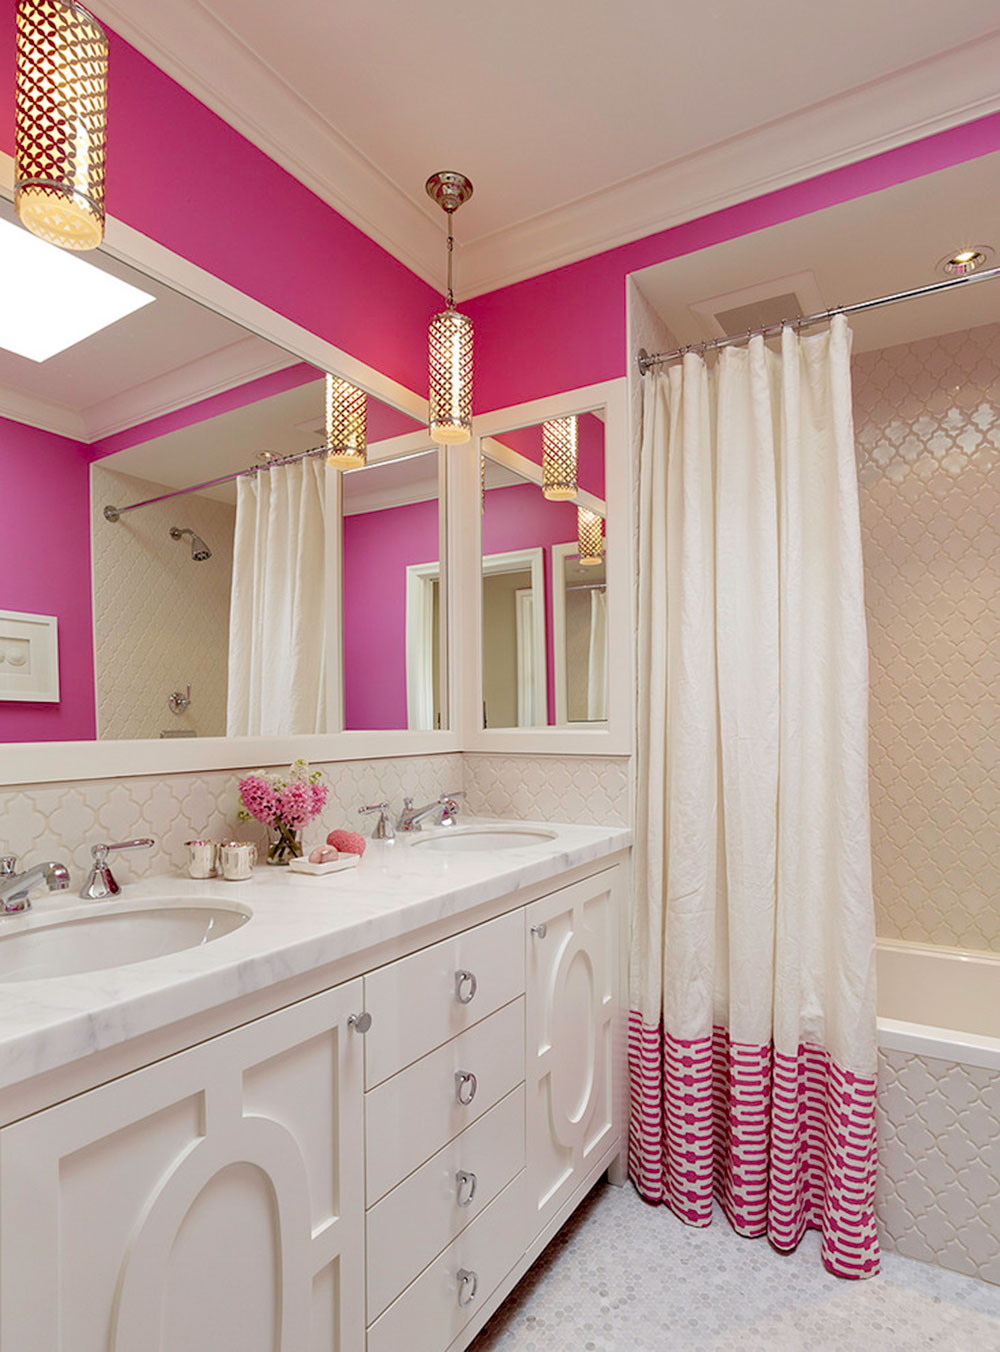 Enhance your bathroom look with trendy shower curtains5 trendy shower curtains for your bathroom